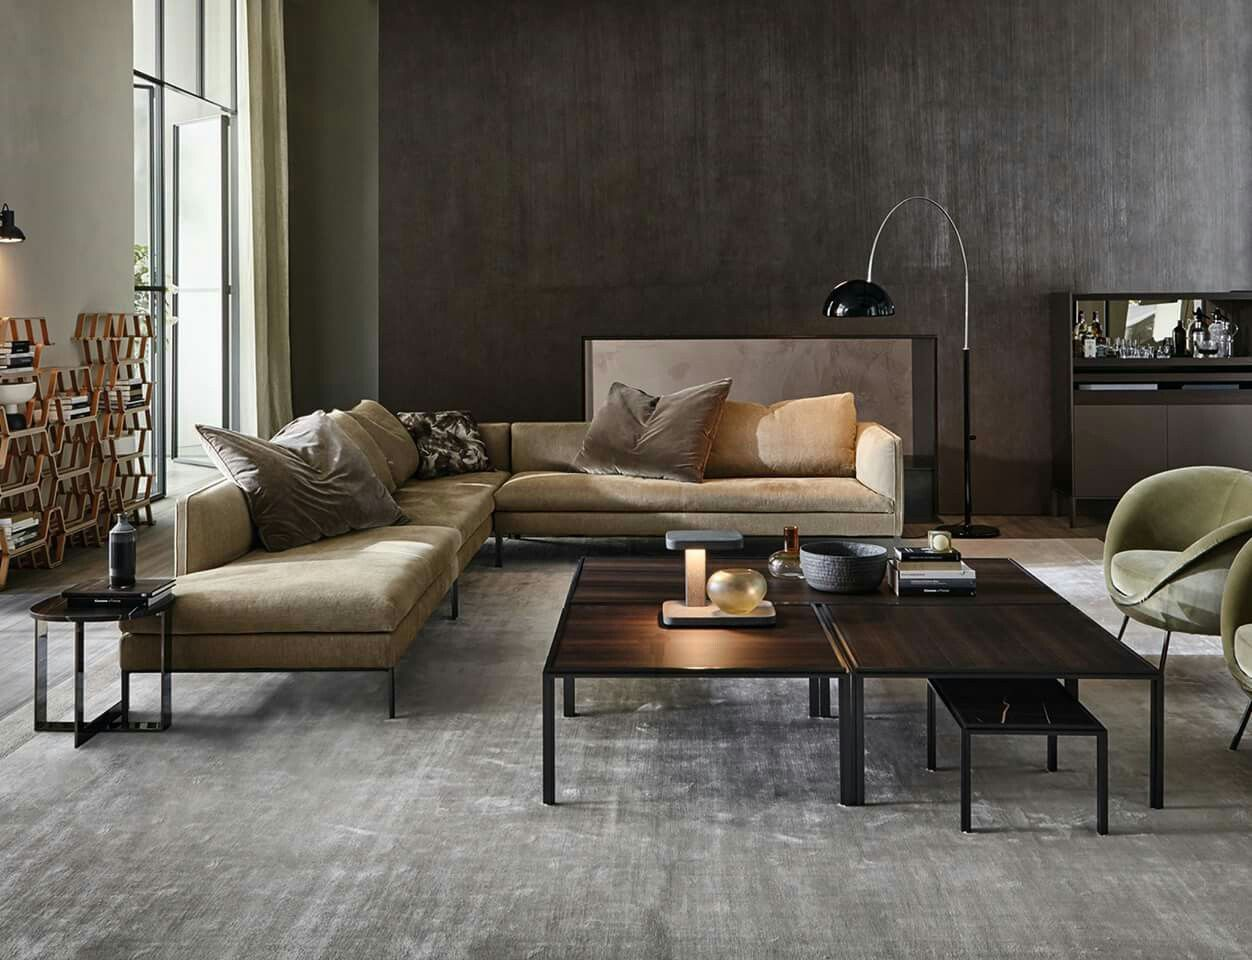 Salones Decoracion De Interiores Pin By Omer Ben David On Styles In 2019 Minimalismo